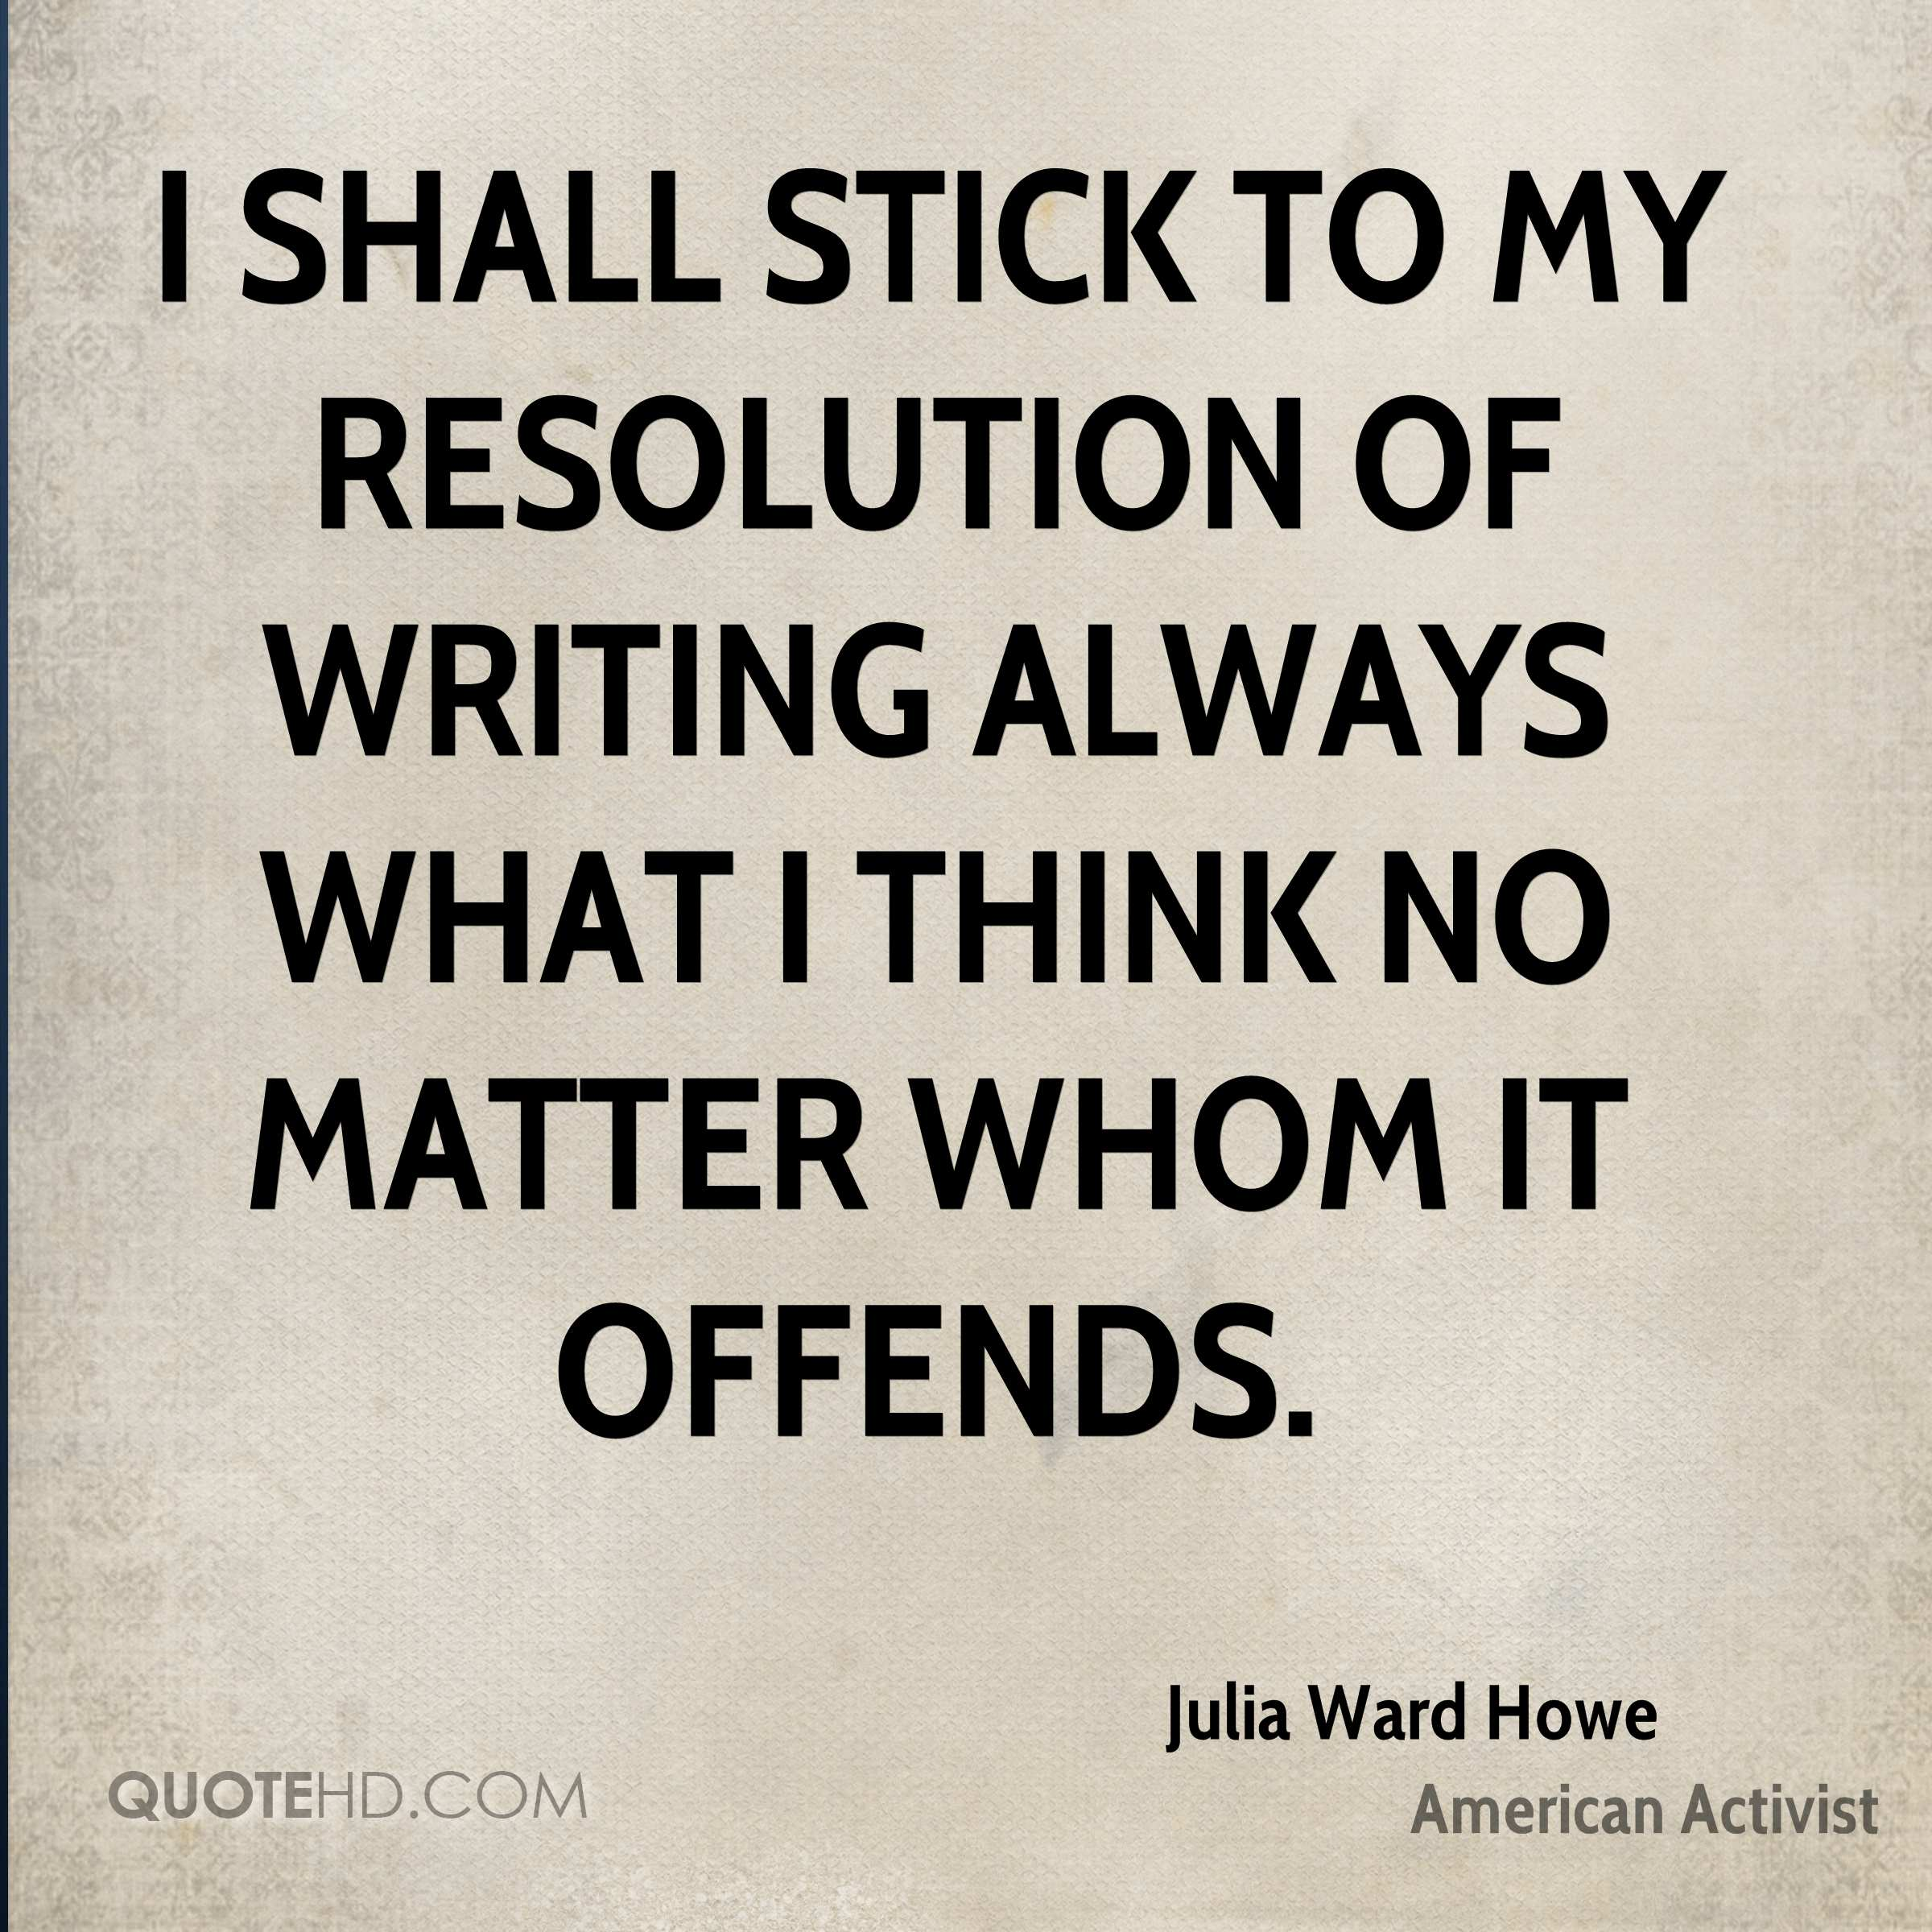 I shall stick to my resolution of writing always what I think no matter whom it offends.